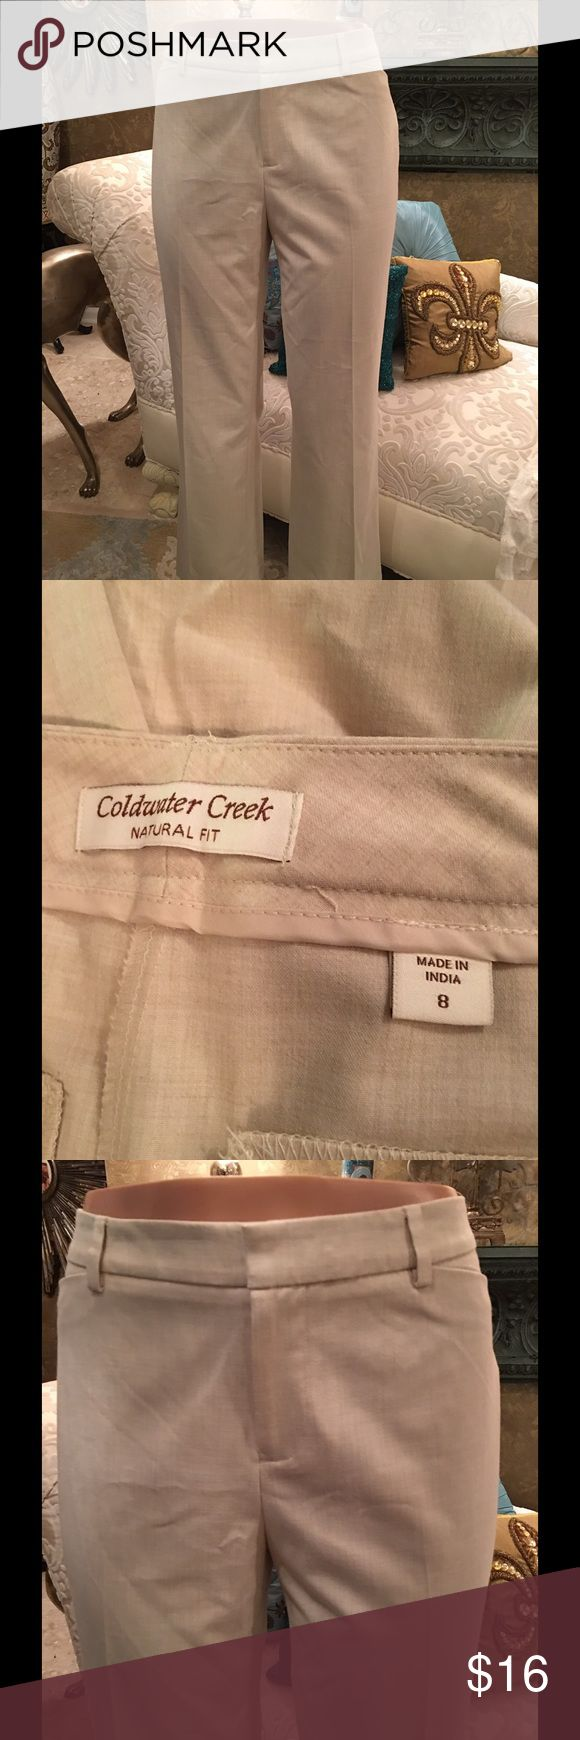 Coldwater Creek Cream Pants Great for any event💋💋 Coldwater Creek Pants